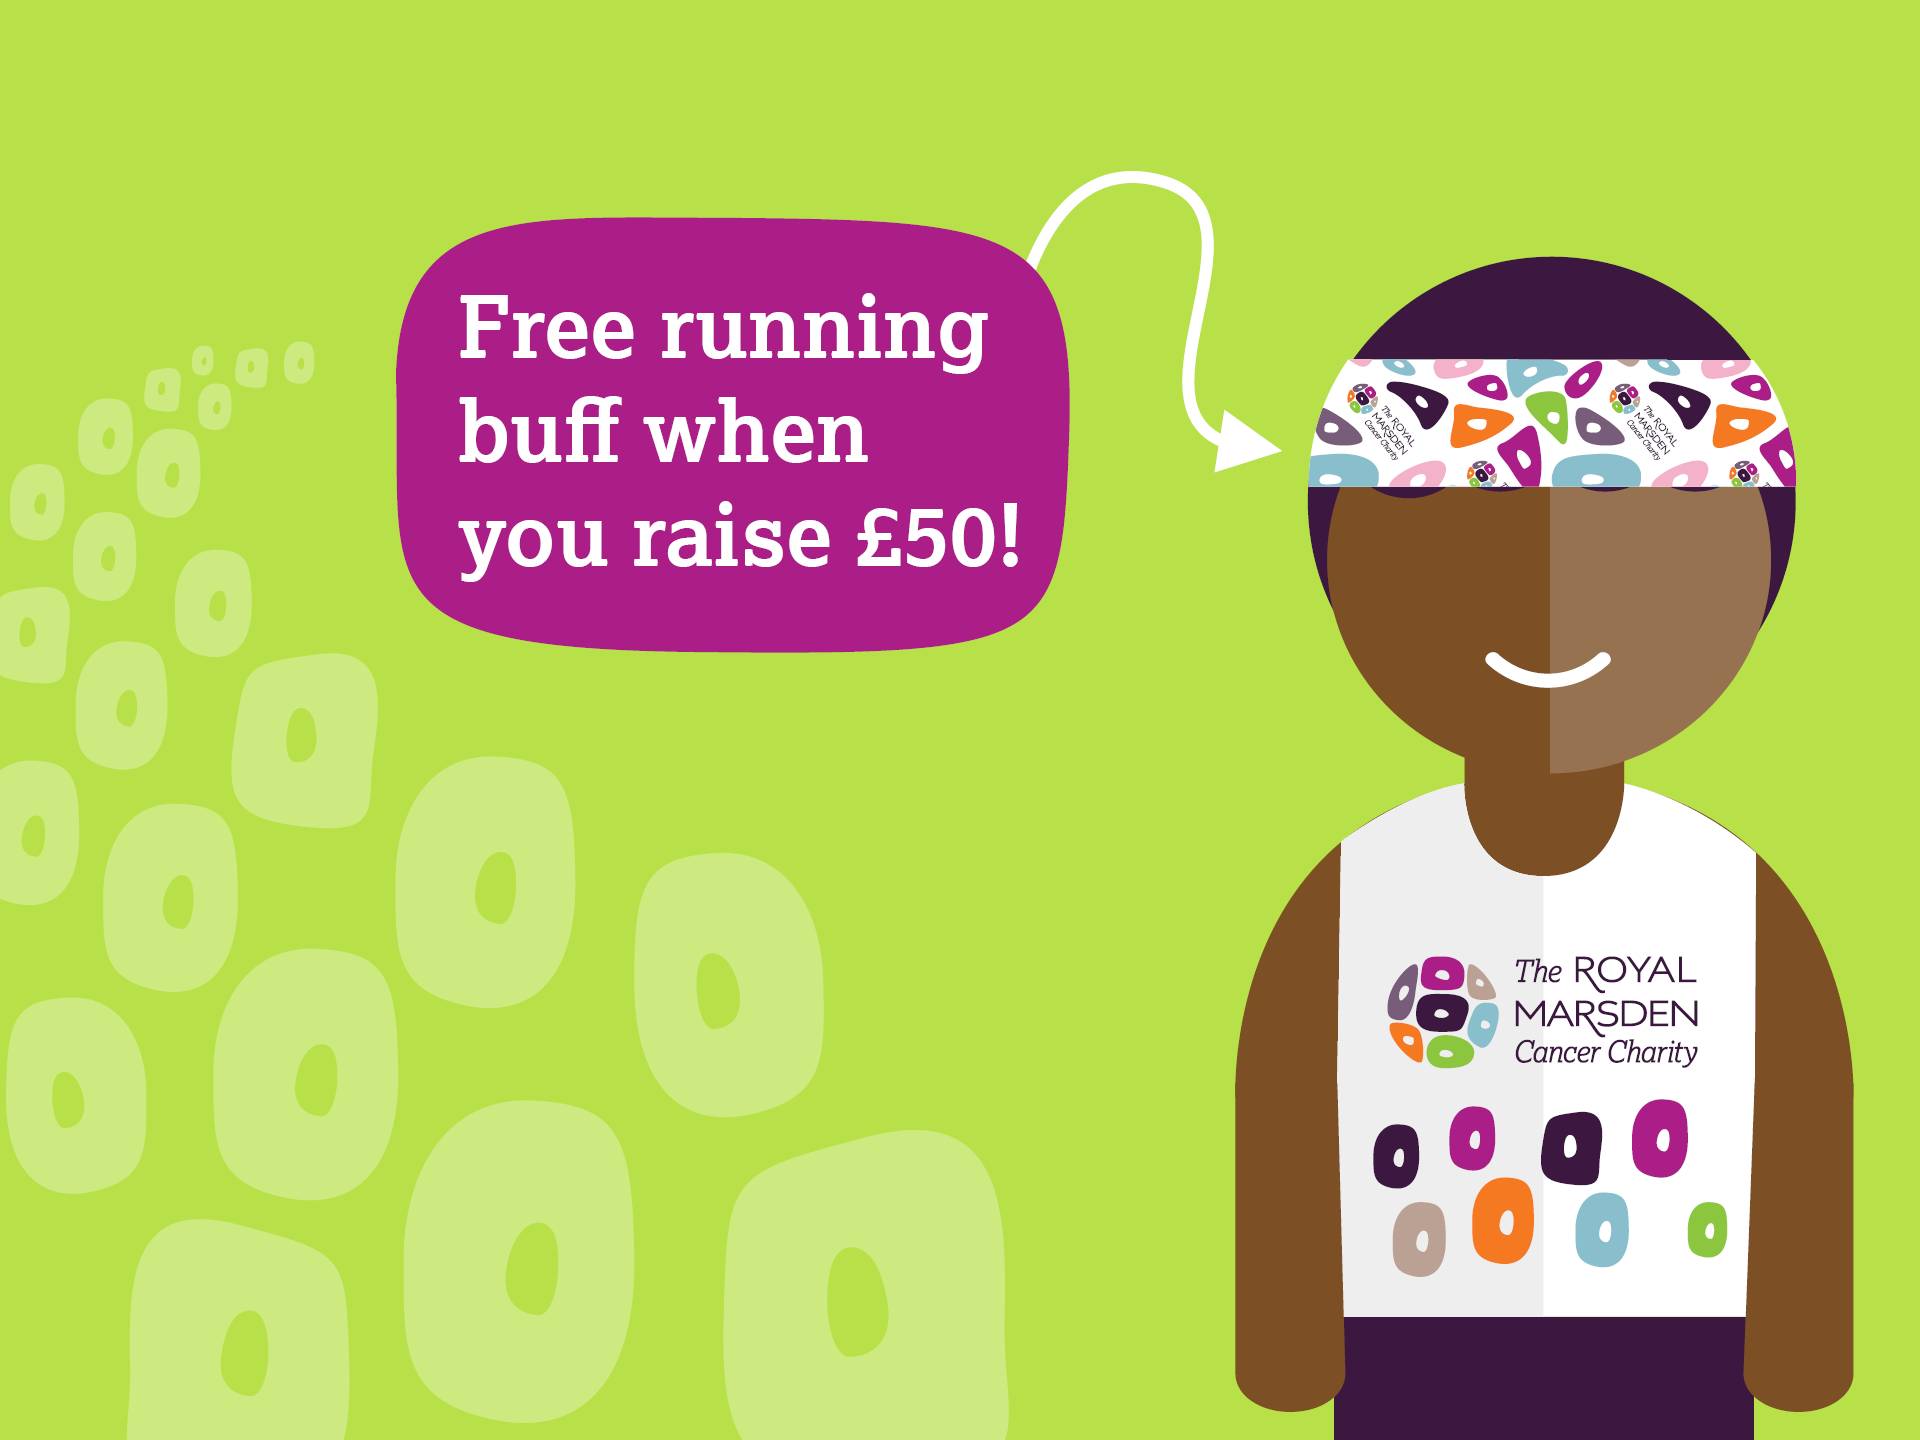 Cartoon showing a person wearing a running buff and a sign with arrow saying 'Free running buff when you raise £50'